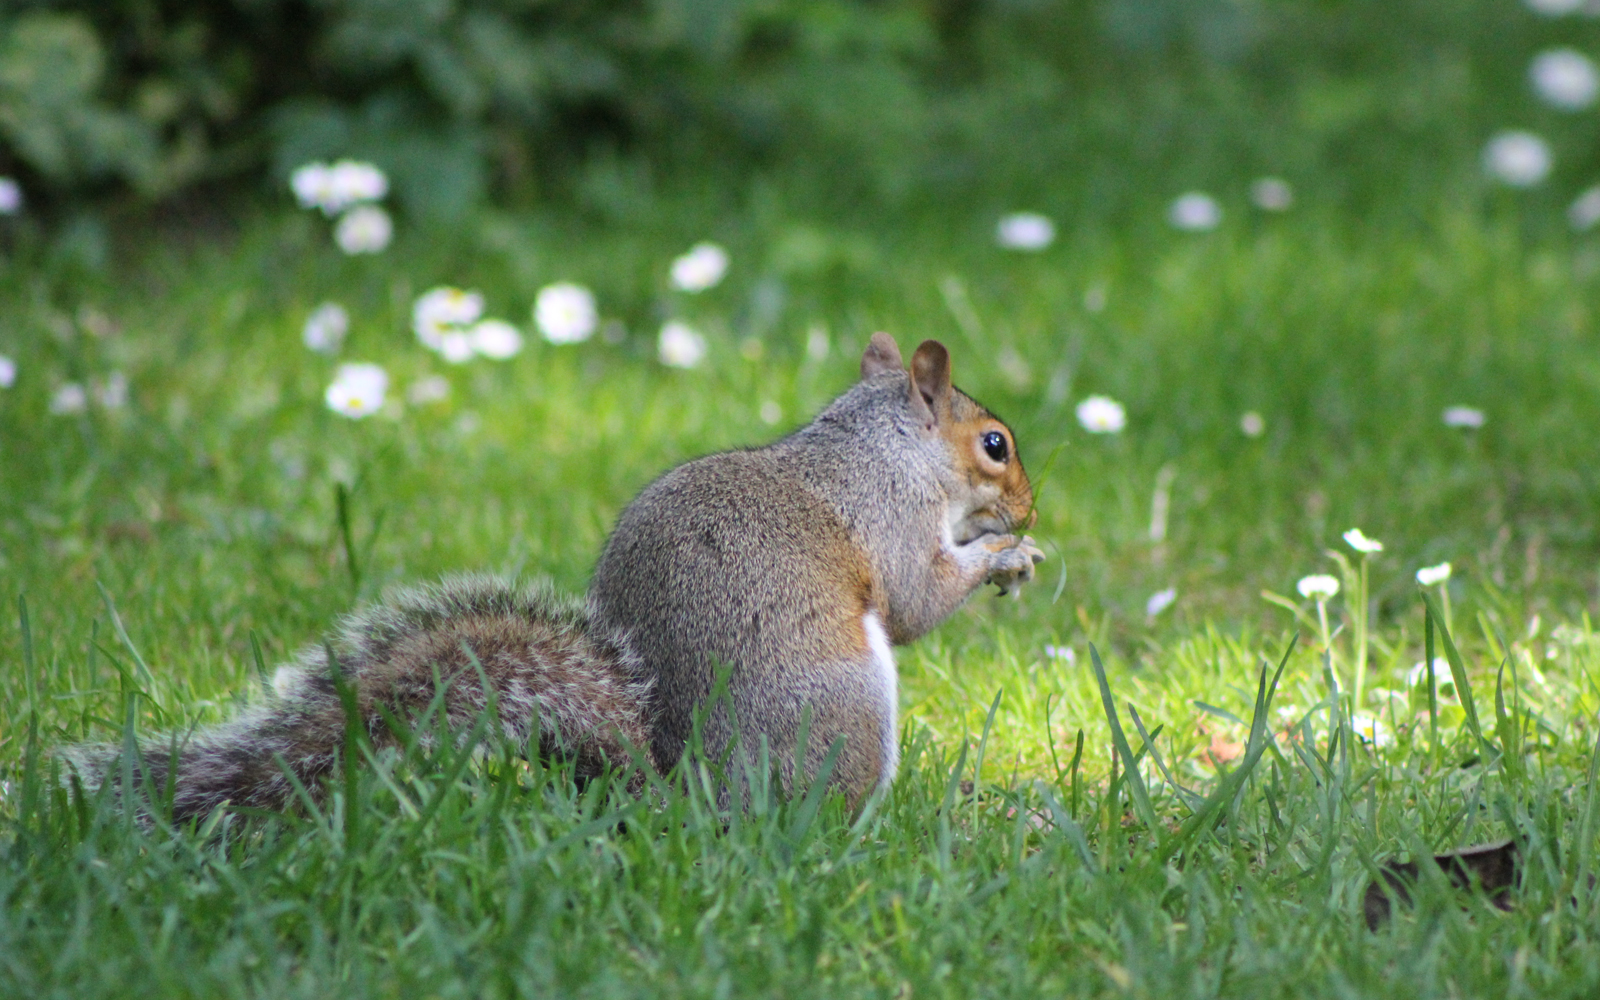 Some Dos and Don'ts When Feeding Backyard Creatures